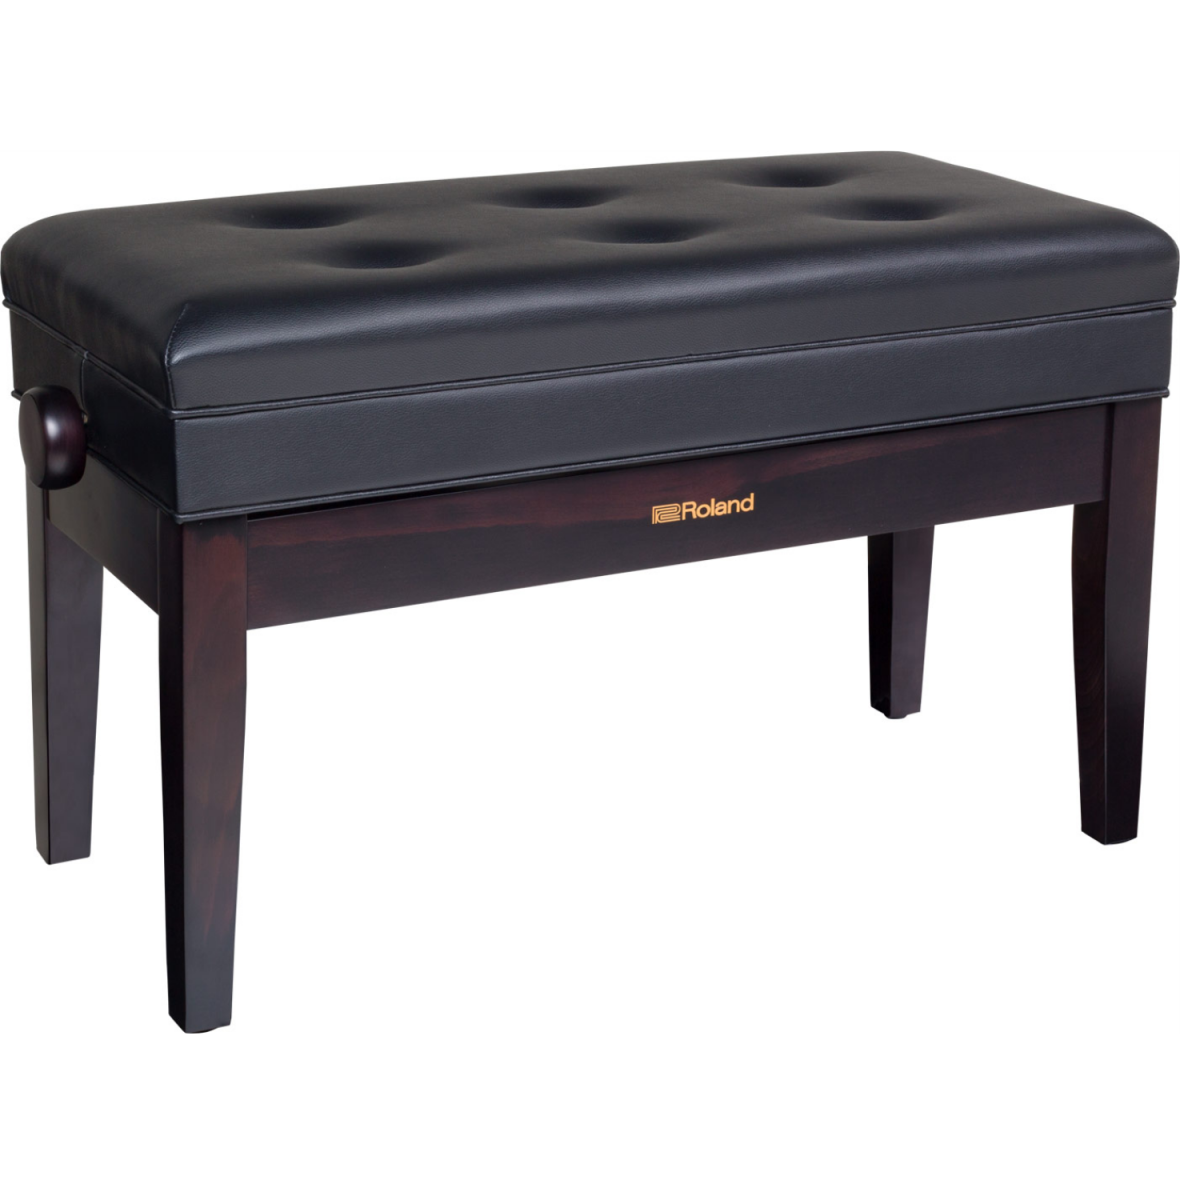 1Roland - Duet Piano Bench with Storage Compartment - Rosewood - RPBD400RW